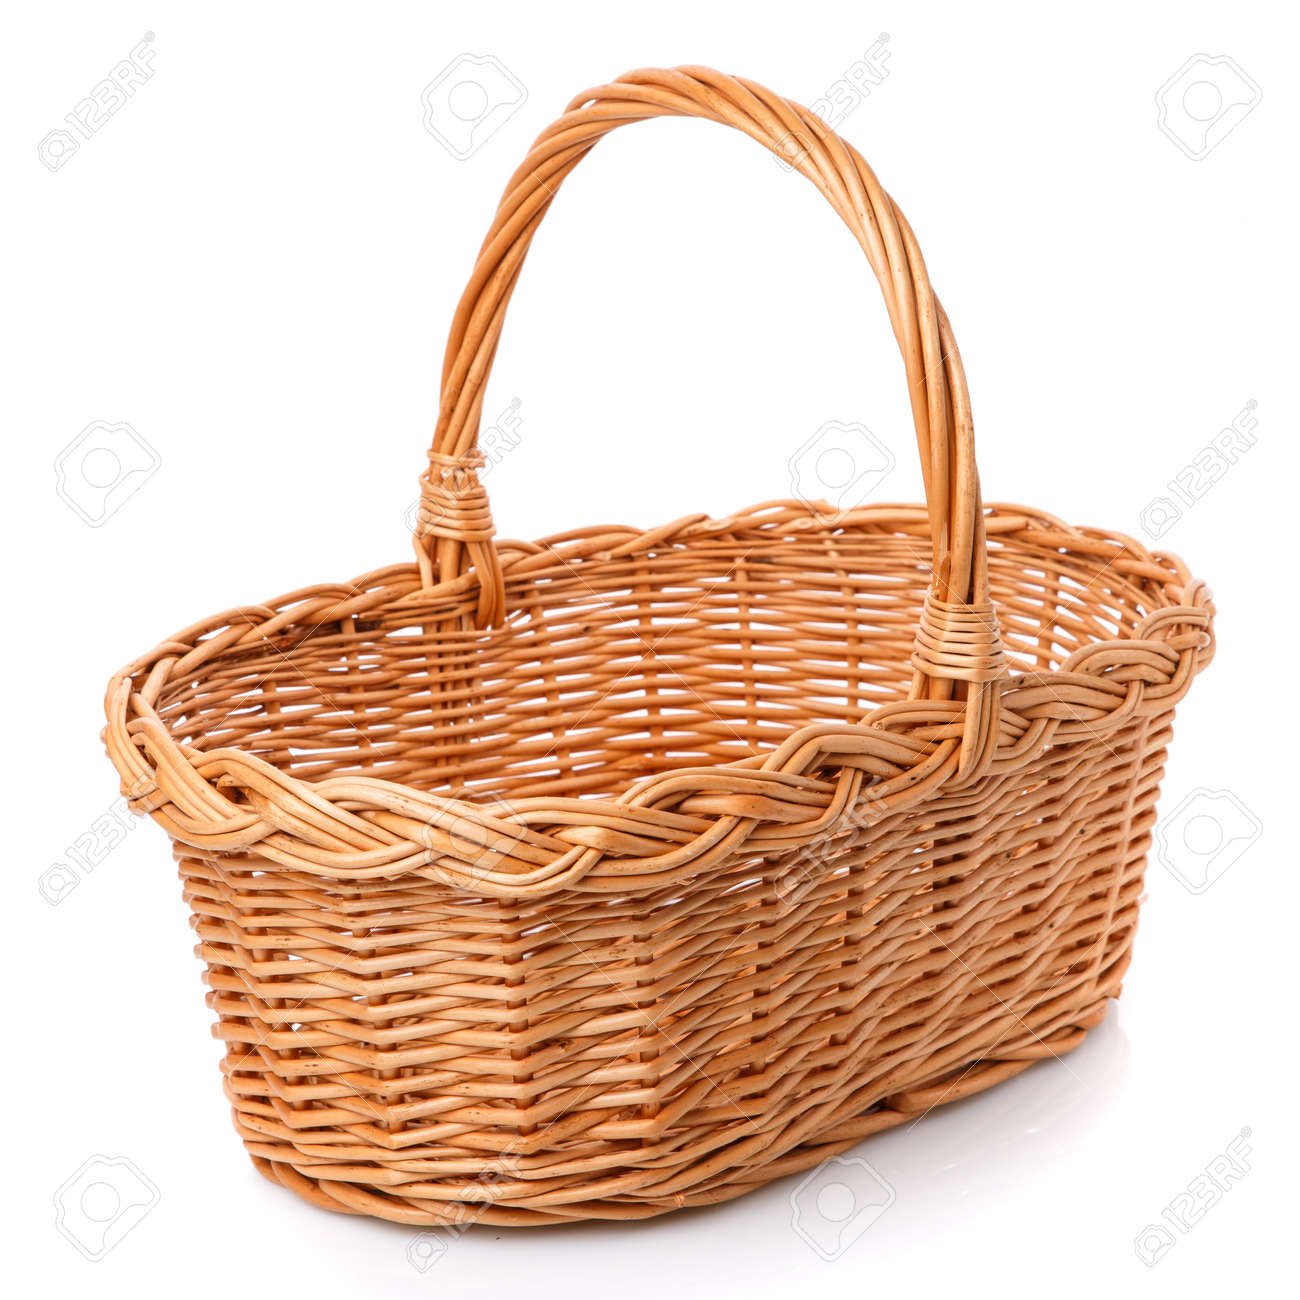 Big square brown wicker basket made of vines on a white background. - 145640113